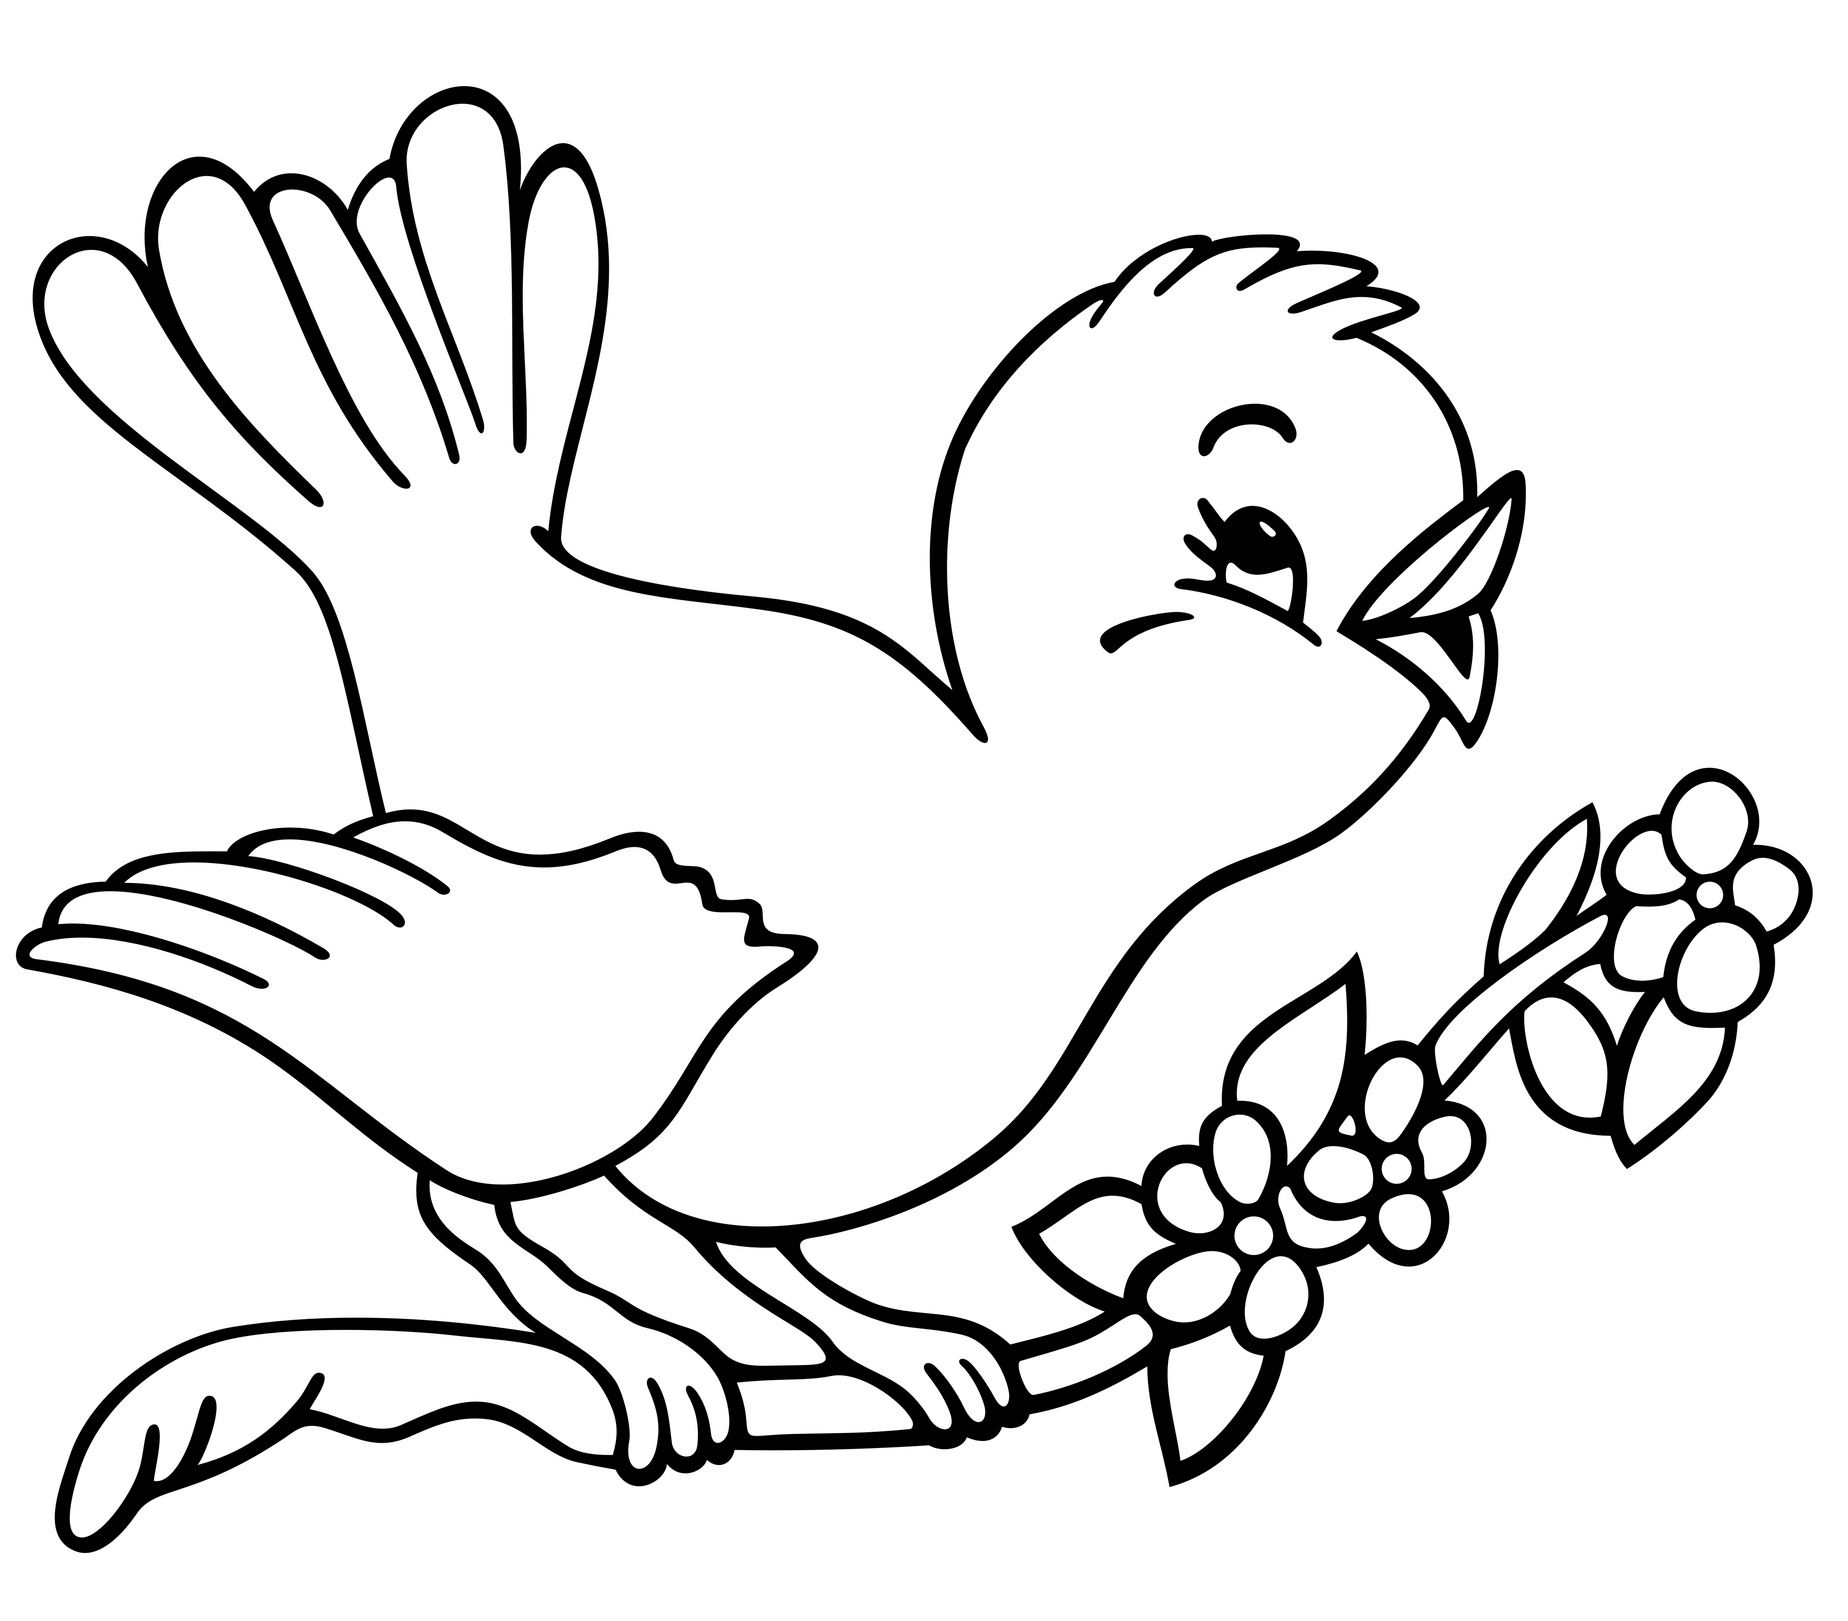 Free Bird Coloring Pages for Kids